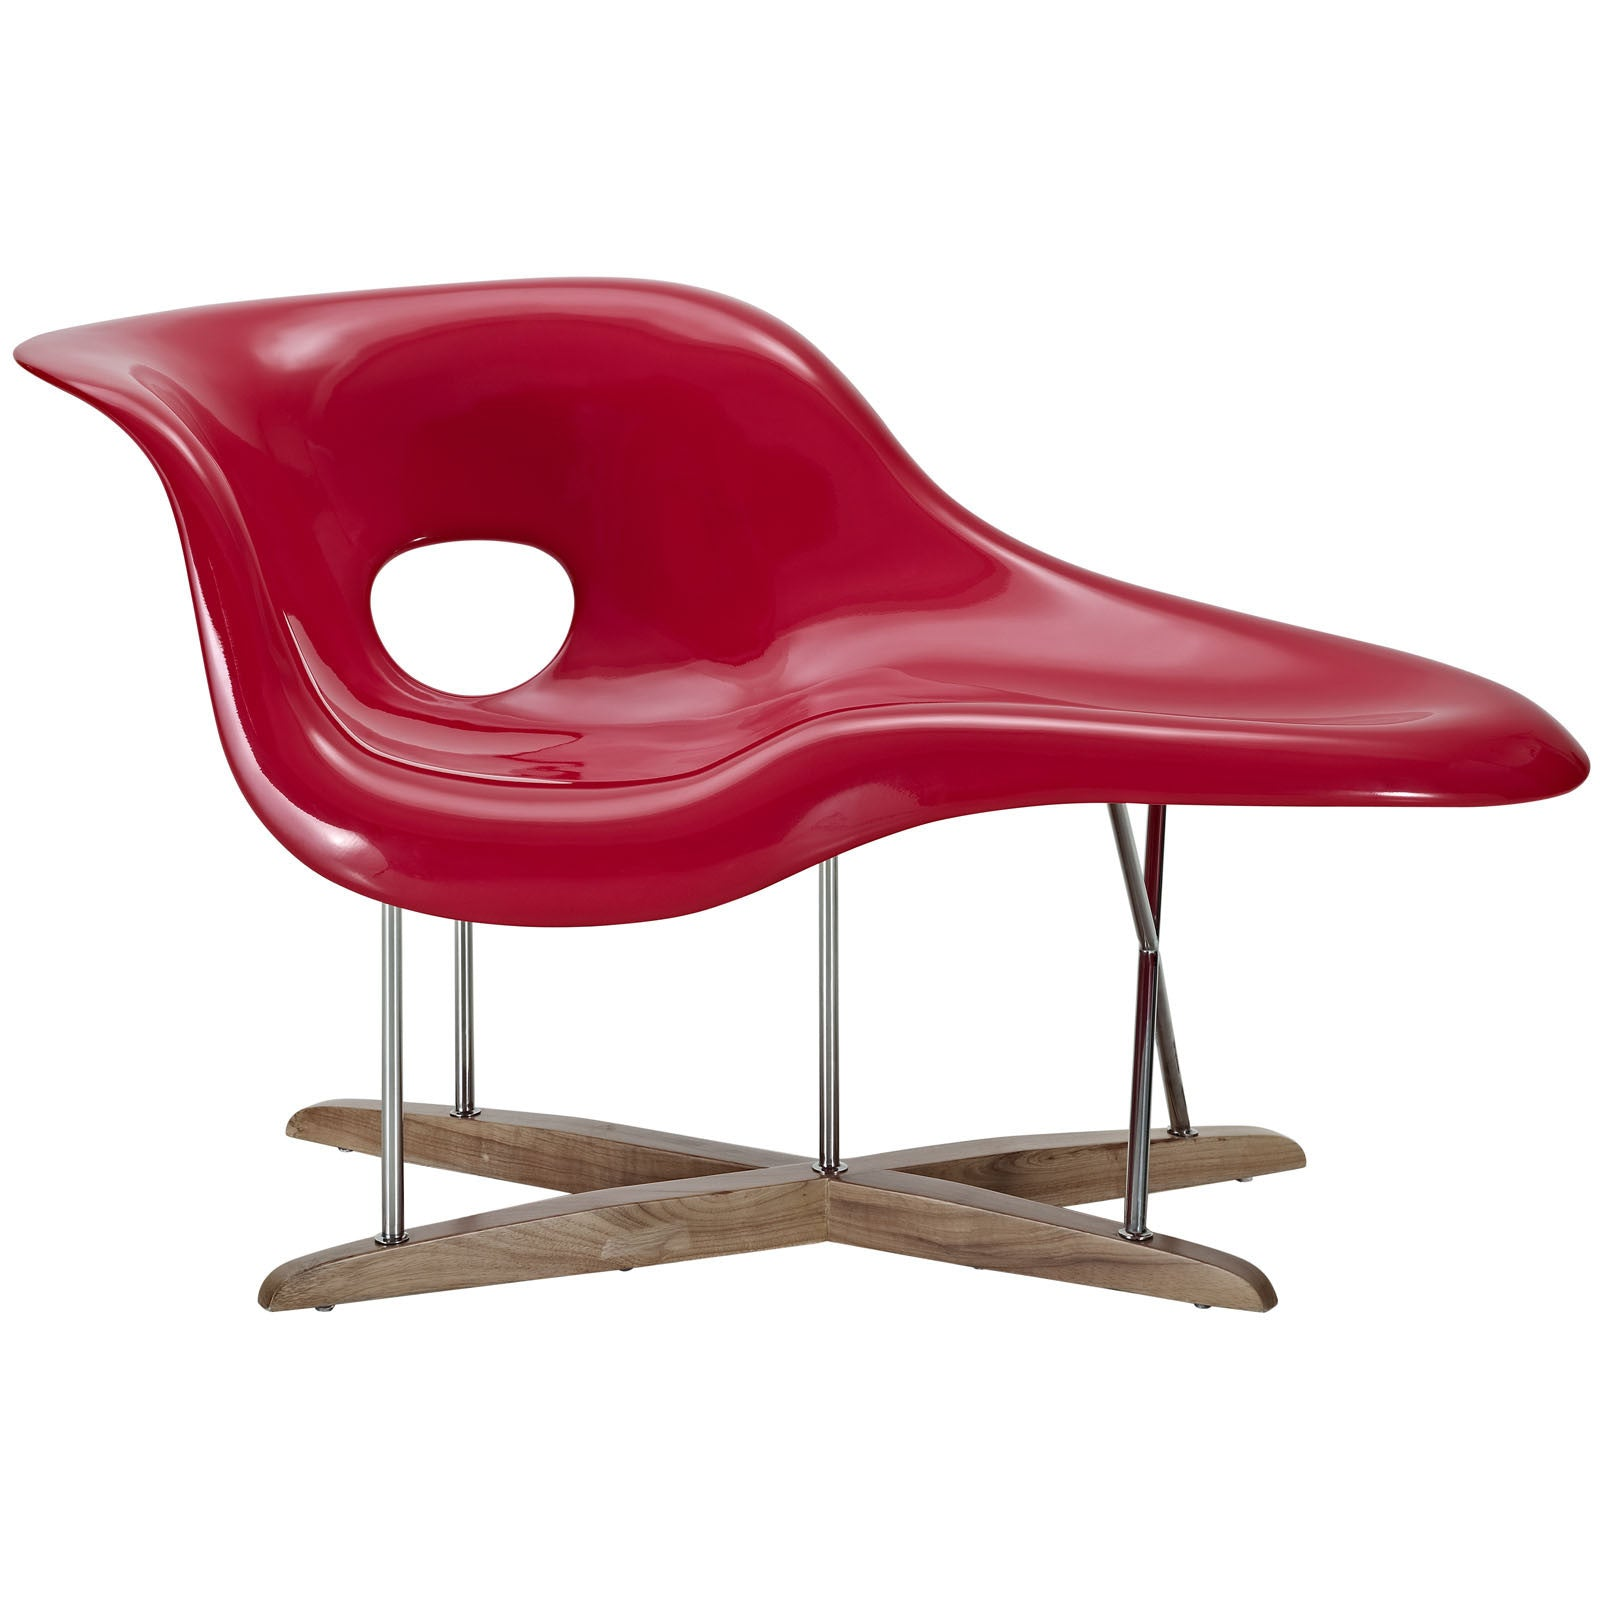 eames la chaise reproduction the modern source. Black Bedroom Furniture Sets. Home Design Ideas